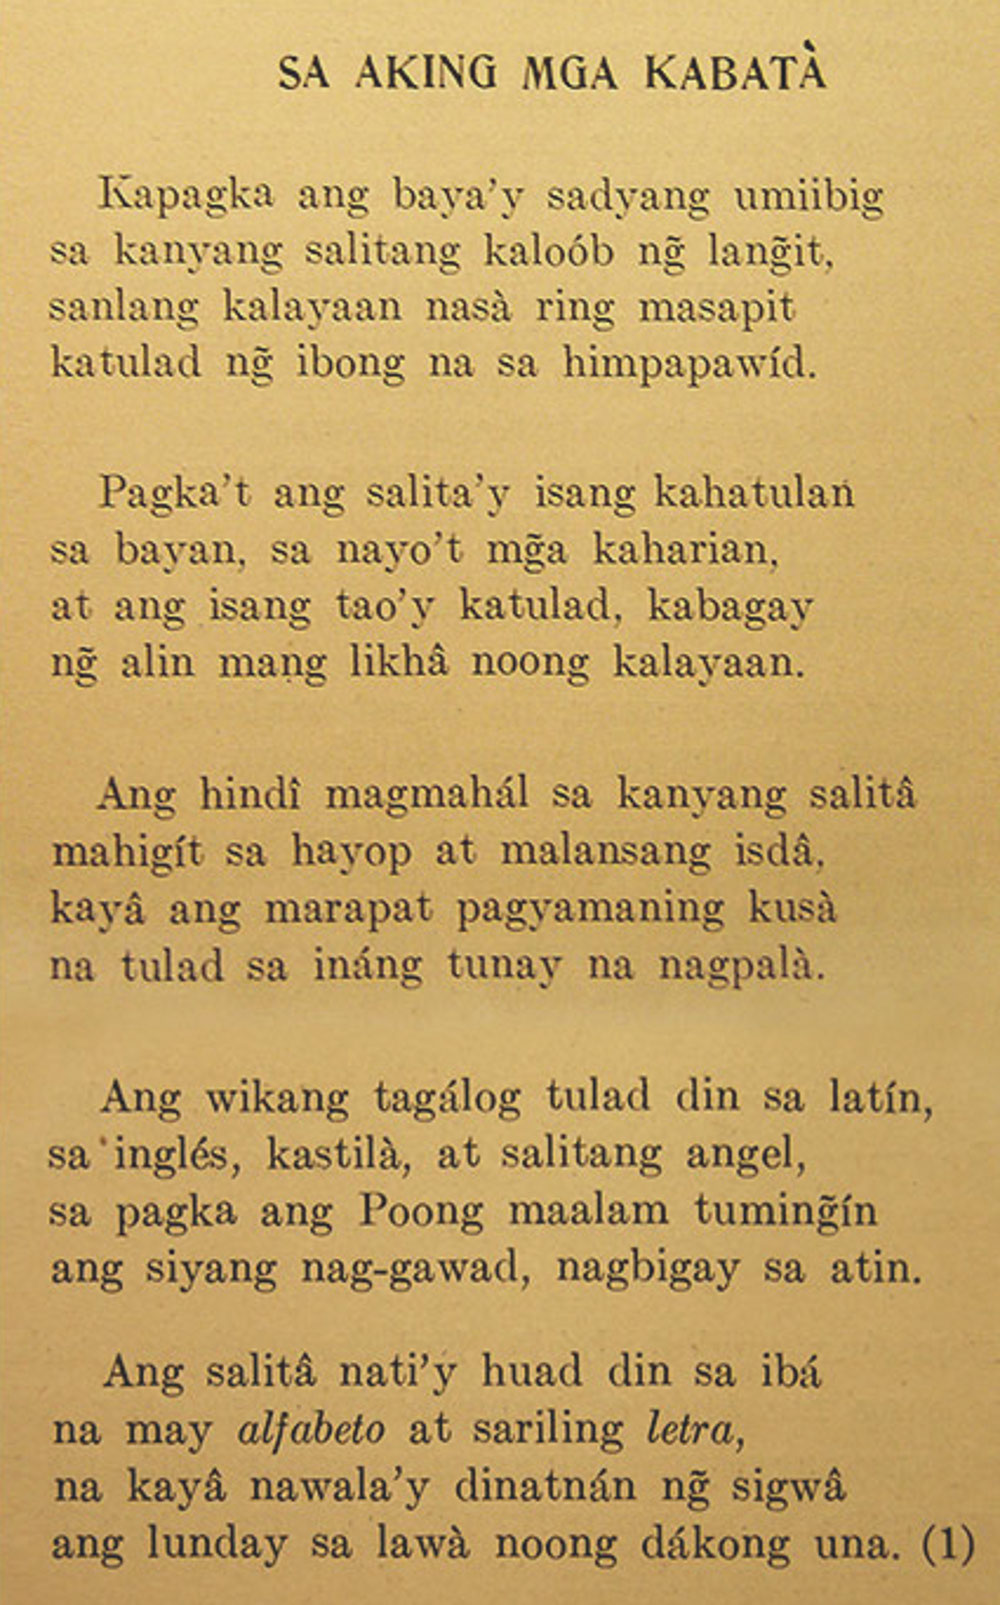 nutrition month 2013 essay tagalog These results are sorted by most relevant first (ranked search) you may also sort these by color rating or essay length.